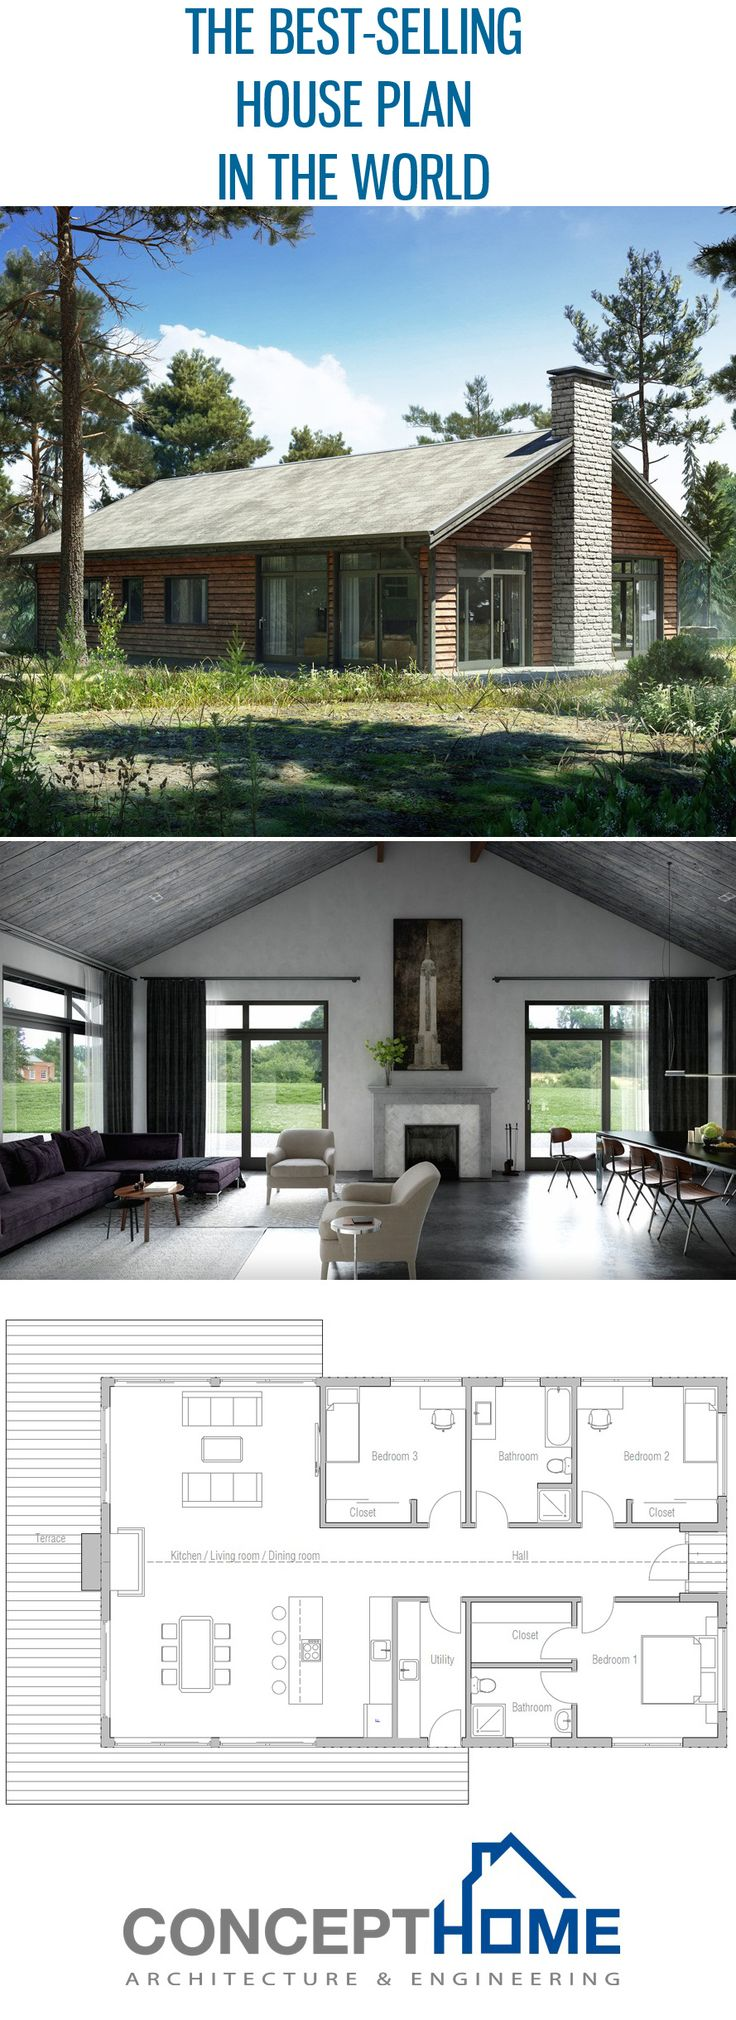 Best selling house plan in the world